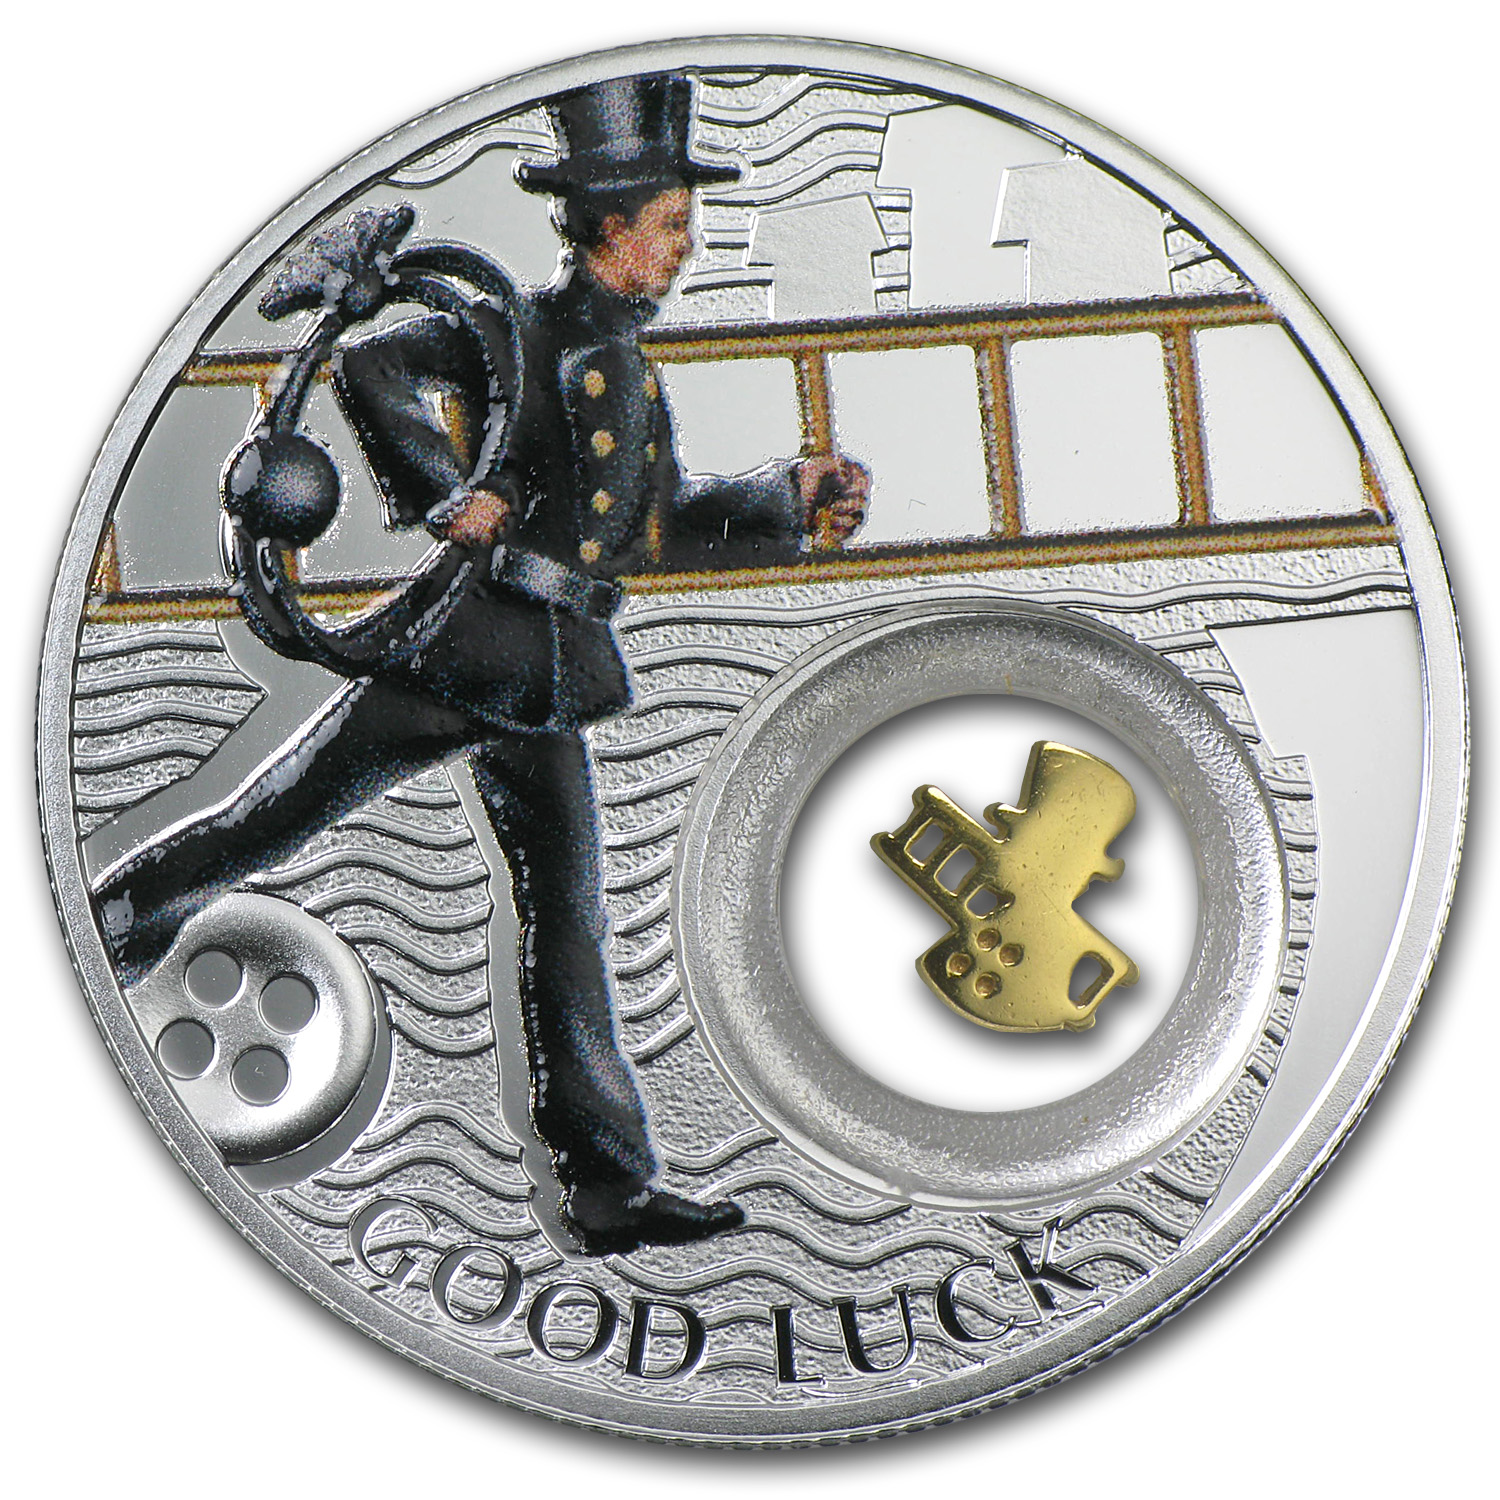 Niue 2014 Proof Silver $1 Good Luck Series - Chimney Sweep